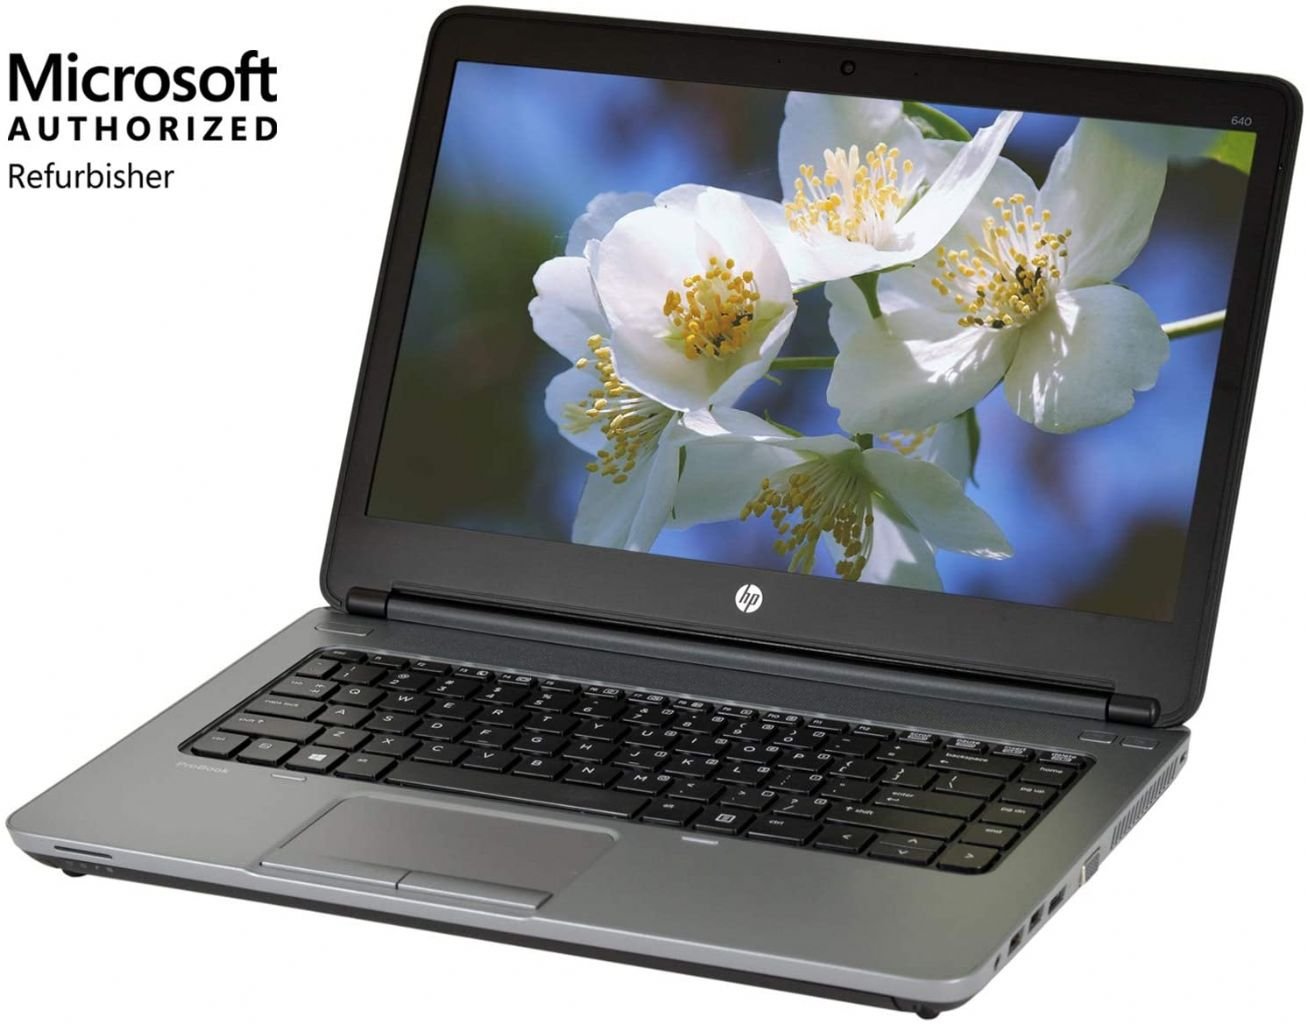 HP ProBook 640 G1 14' - I5 43000m 2,60Ghz (up to 3,30Ghz) -  8GB -  SSD 256gb - W7Pro (Upg.Win10) - Refurbished Gar@12M GRADO A